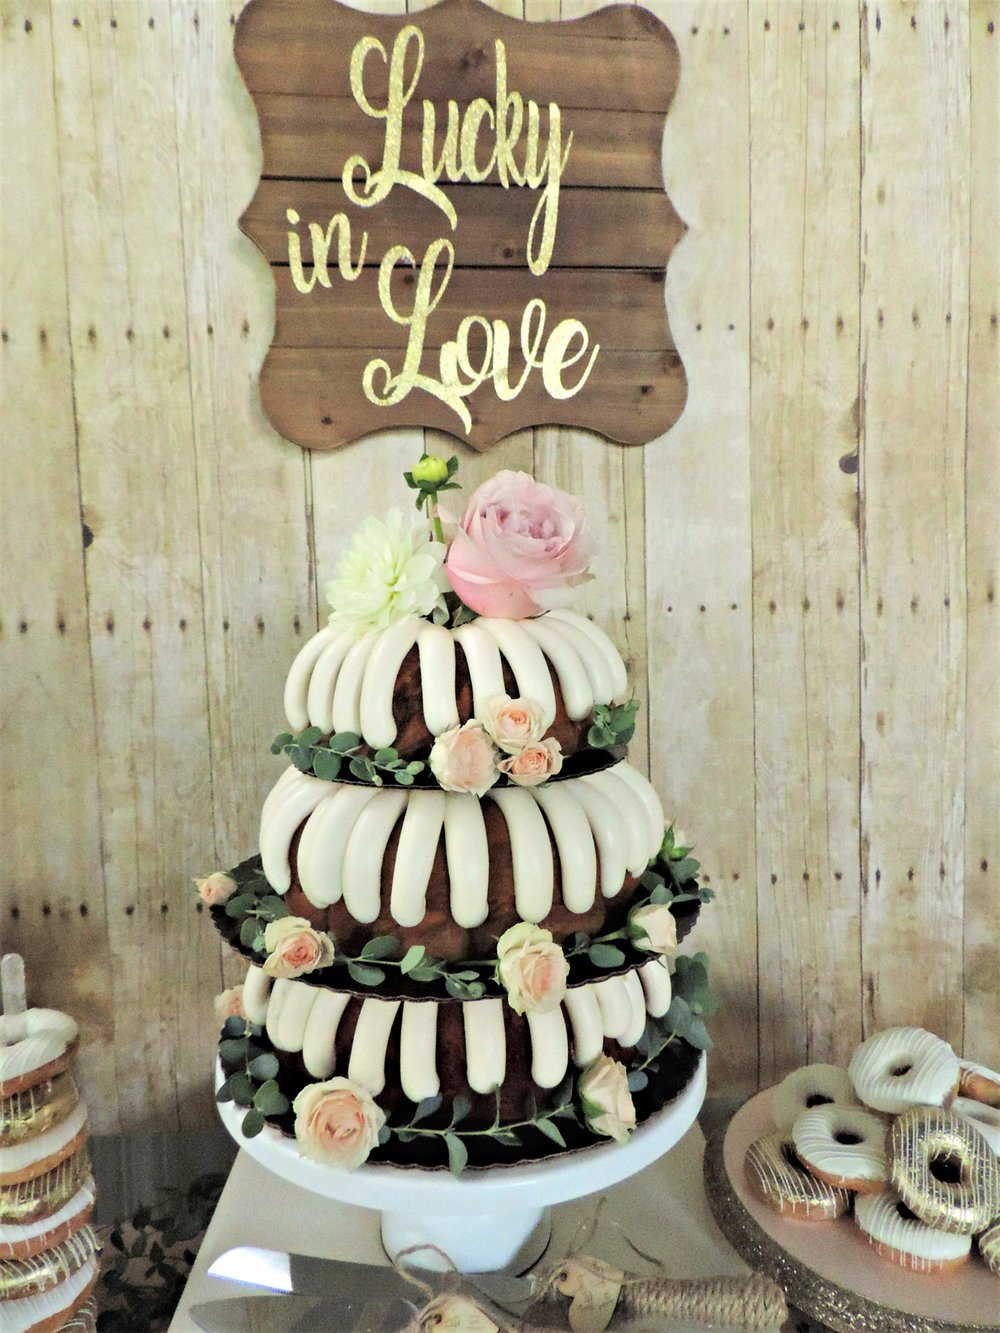 Nothing Bundt Cake-Wedding Cake-Rustic Wedding-Blush Pink Wedding-Bundt Wedding Cake-www.SugarPartiesLA.com.jpg